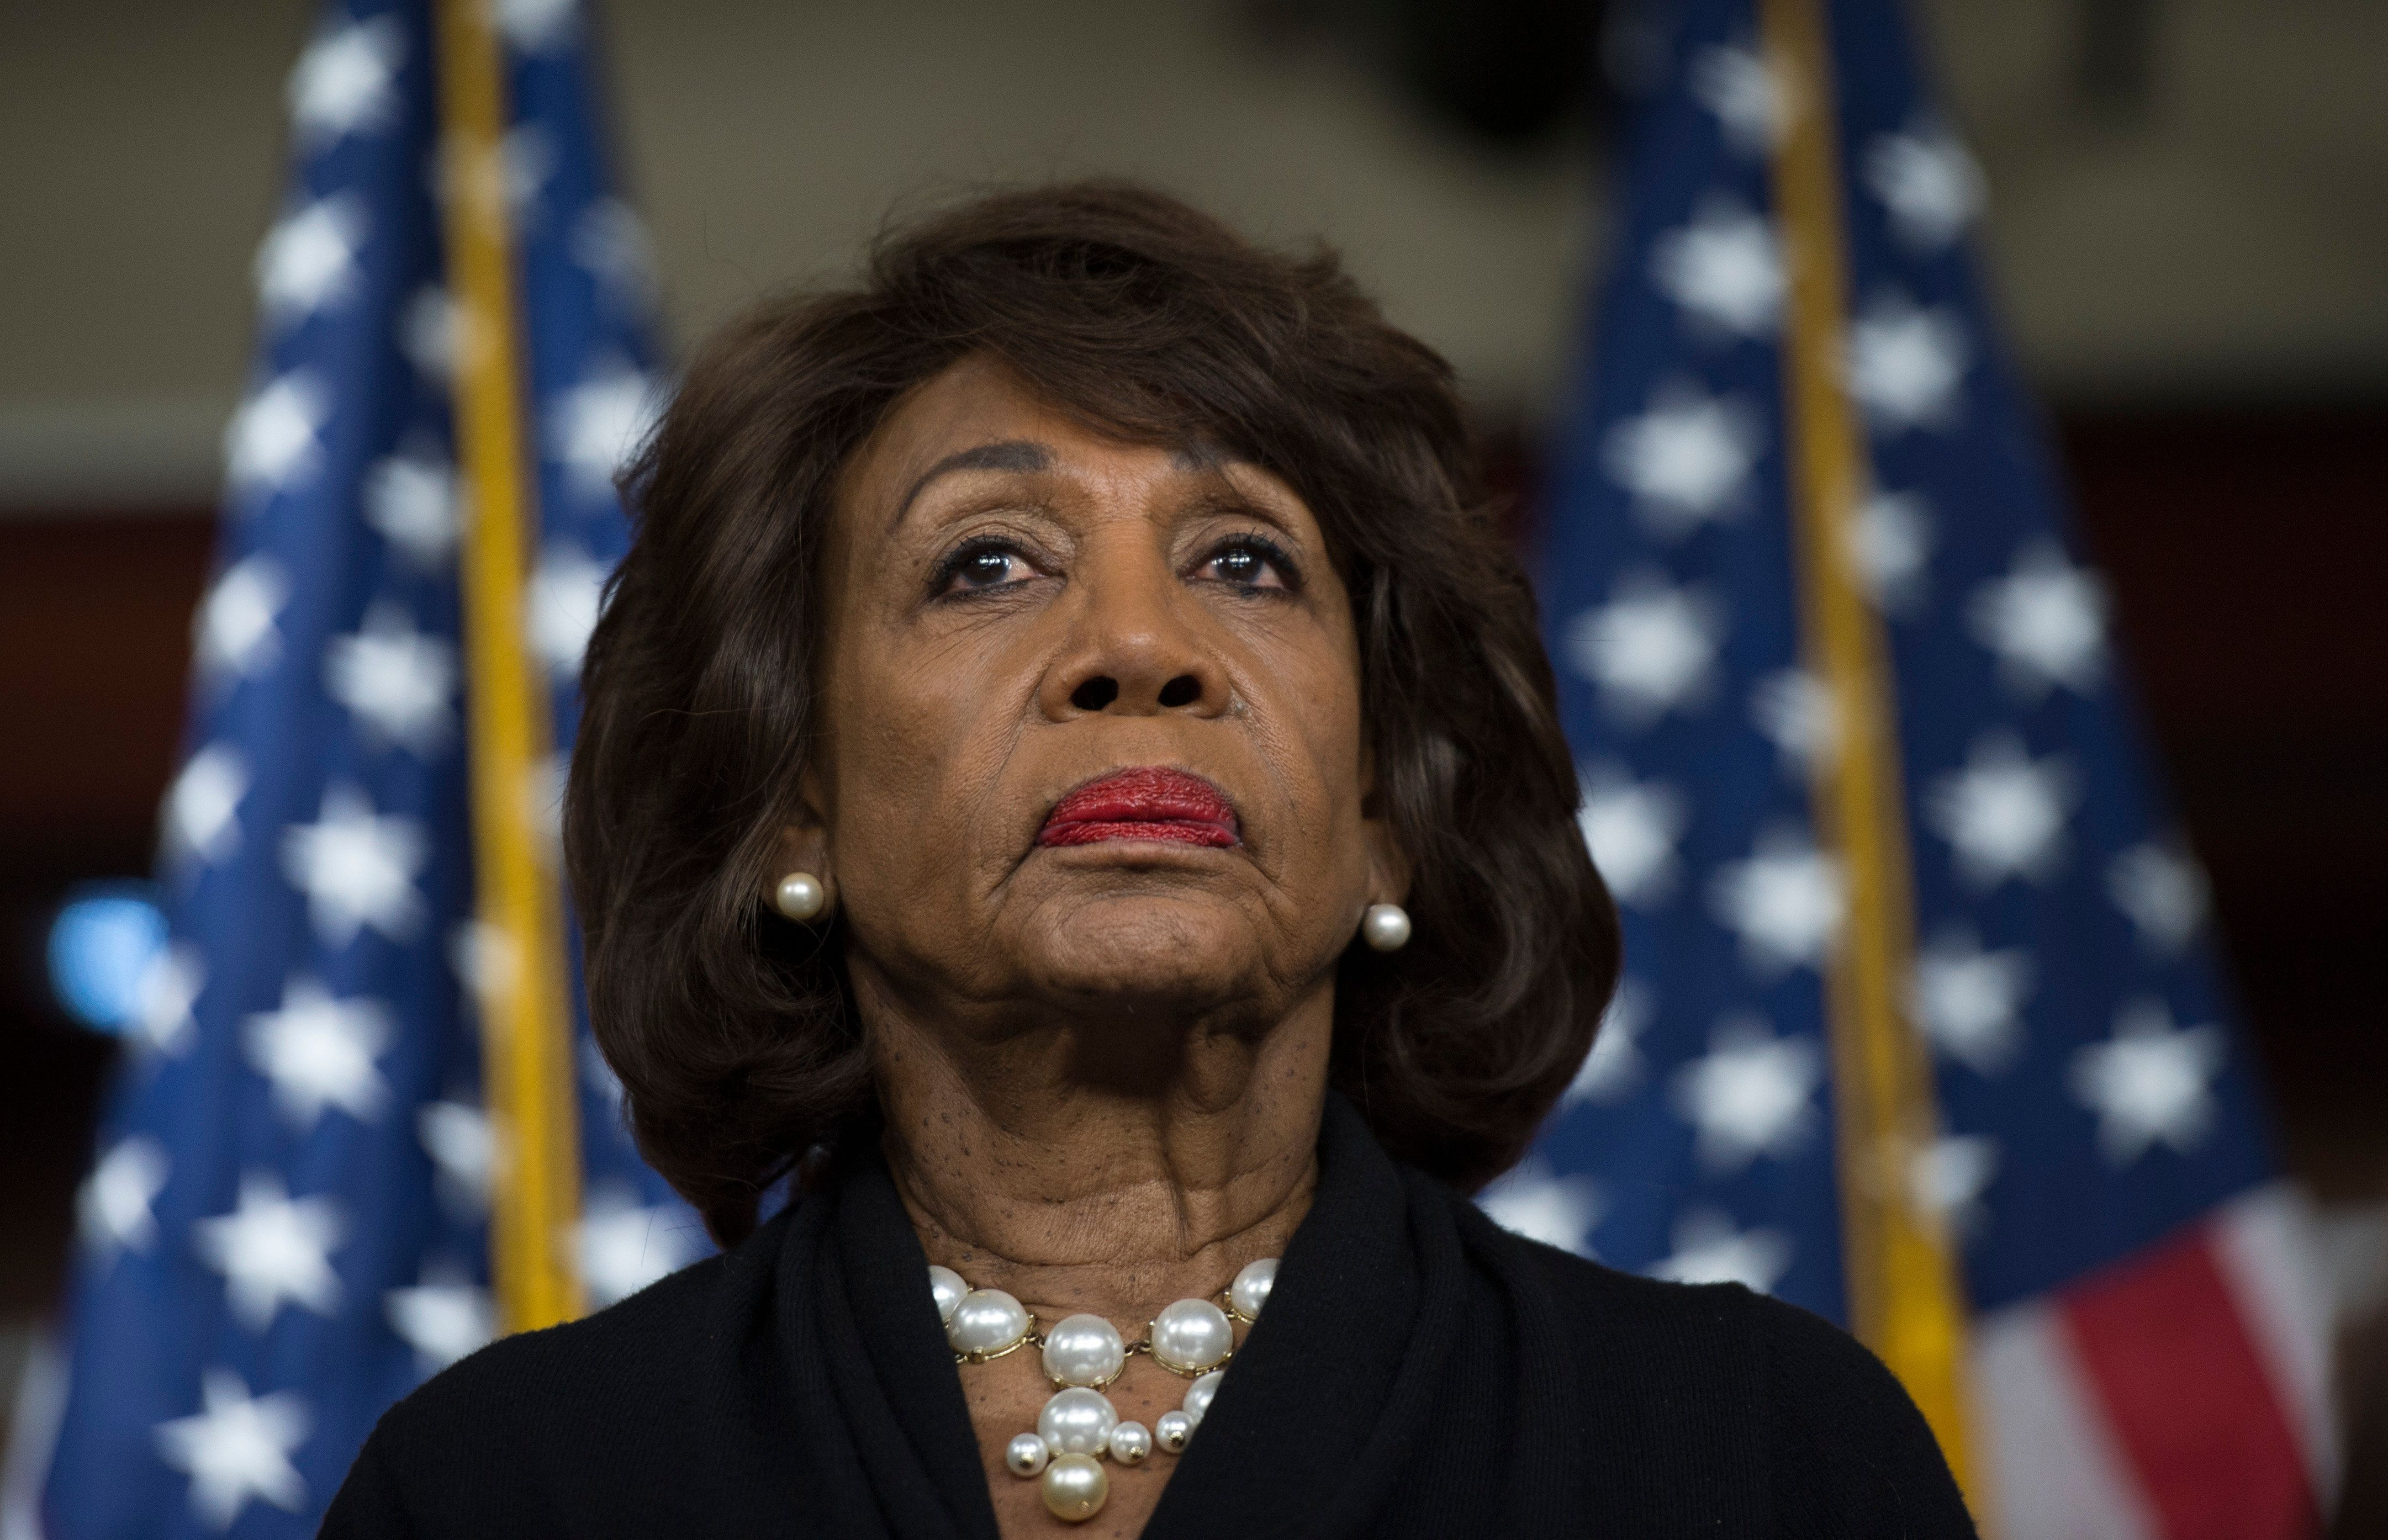 US Representative Maxine Waters (D-CA) looks on before speaking to reports regarding the Russia investigation on Capitol Hill in Washington, DC on January 9, 2018. / AFP PHOTO / Andrew CABALLERO-REYNOLDS        (Photo credit should read ANDREW CABALLERO-REYNOLDS/AFP/Getty Images)